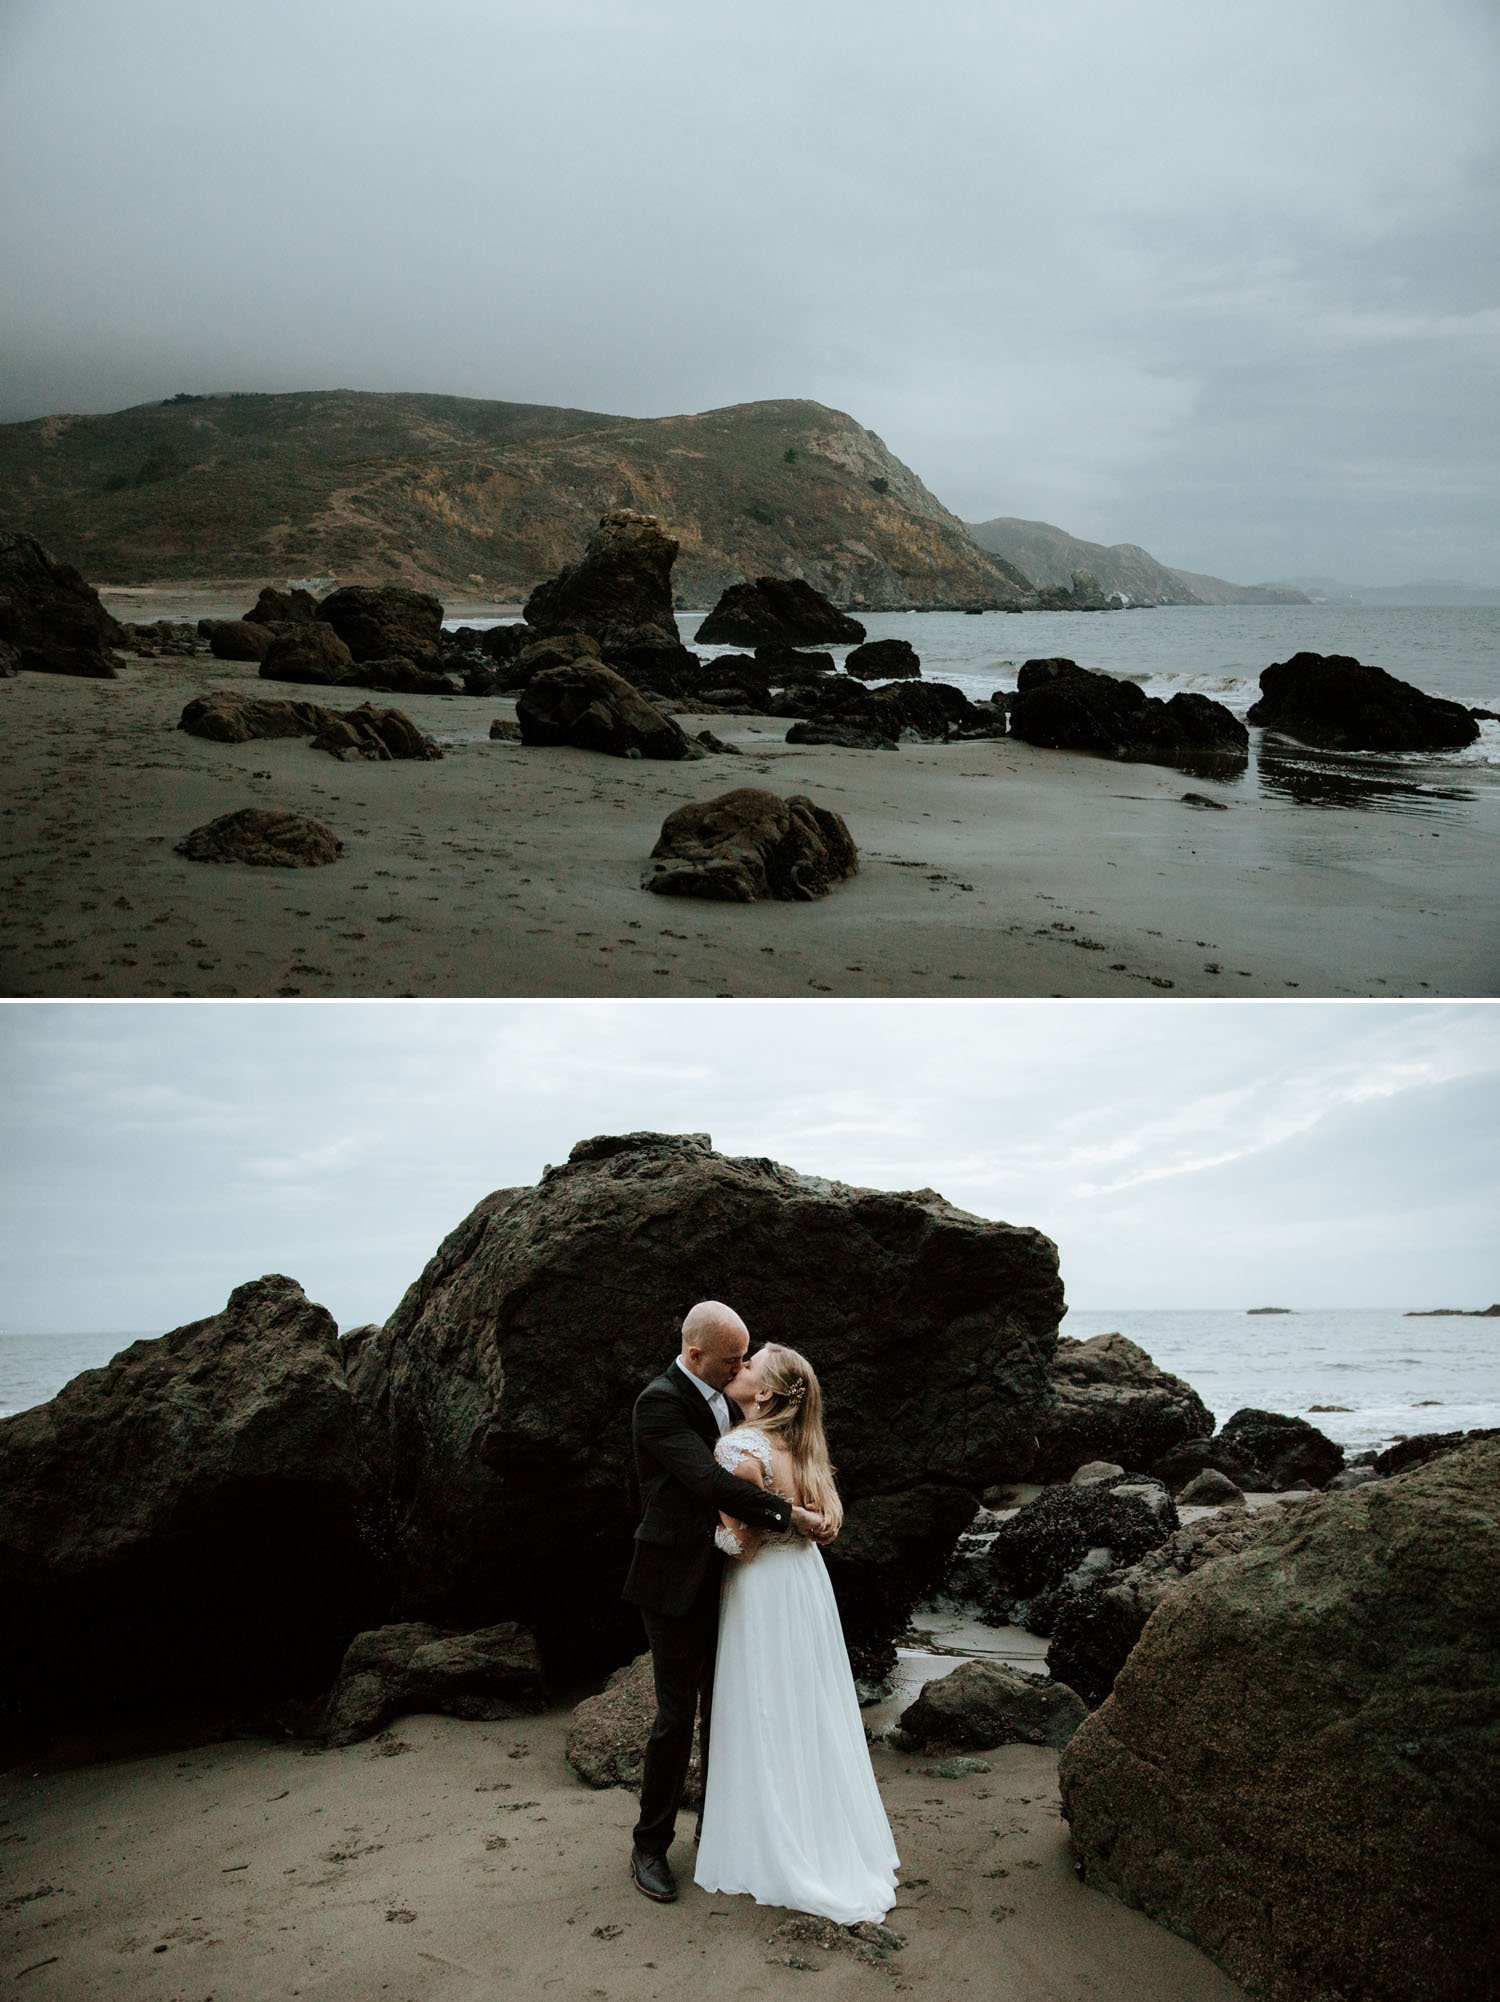 San Francisco Elopement at Muir Beach by Paige Nelson